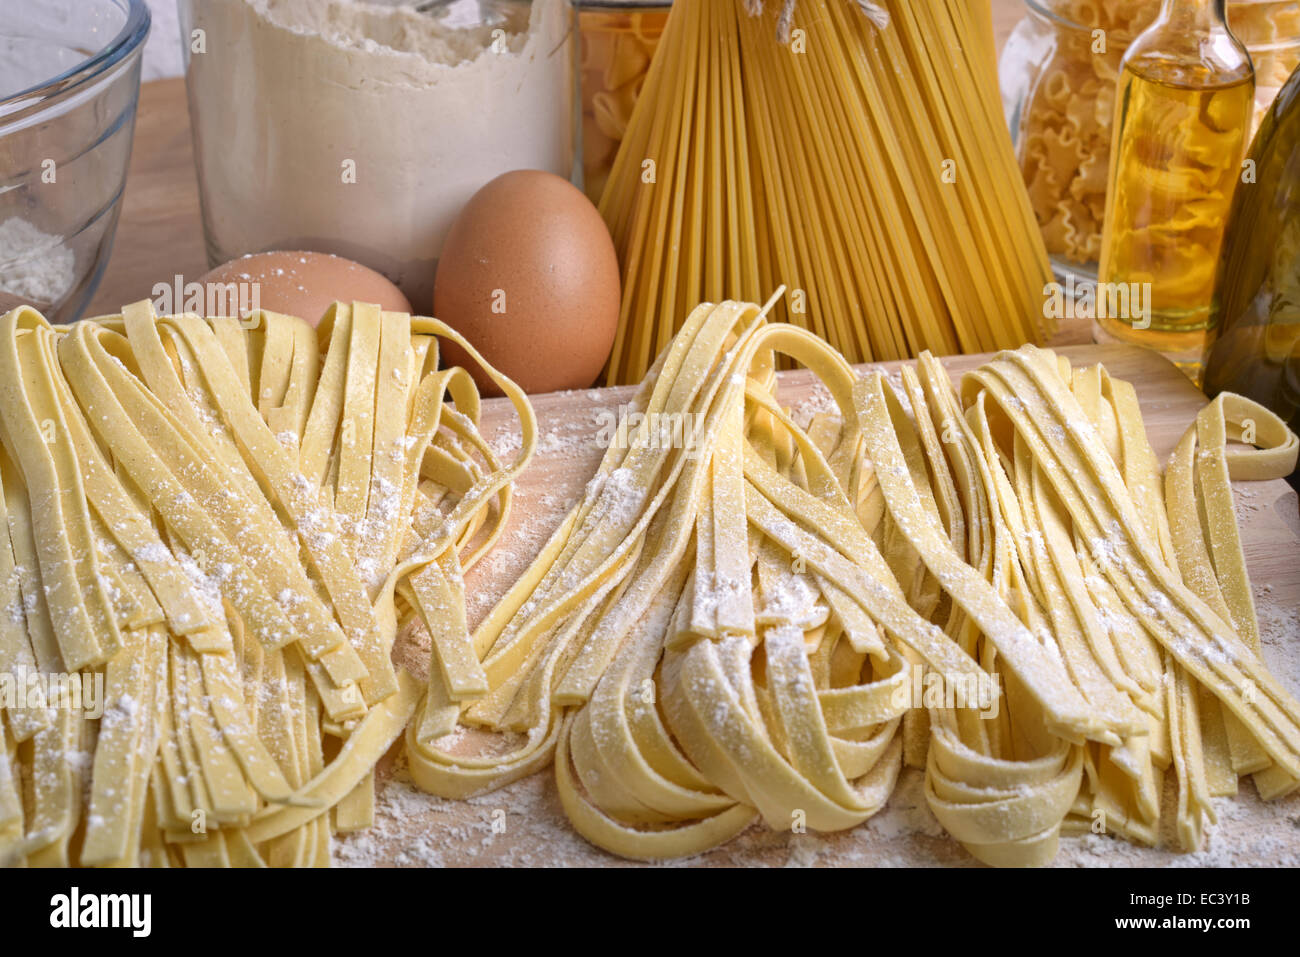 pappardelle homemade pasta typical italian close up - Stock Image